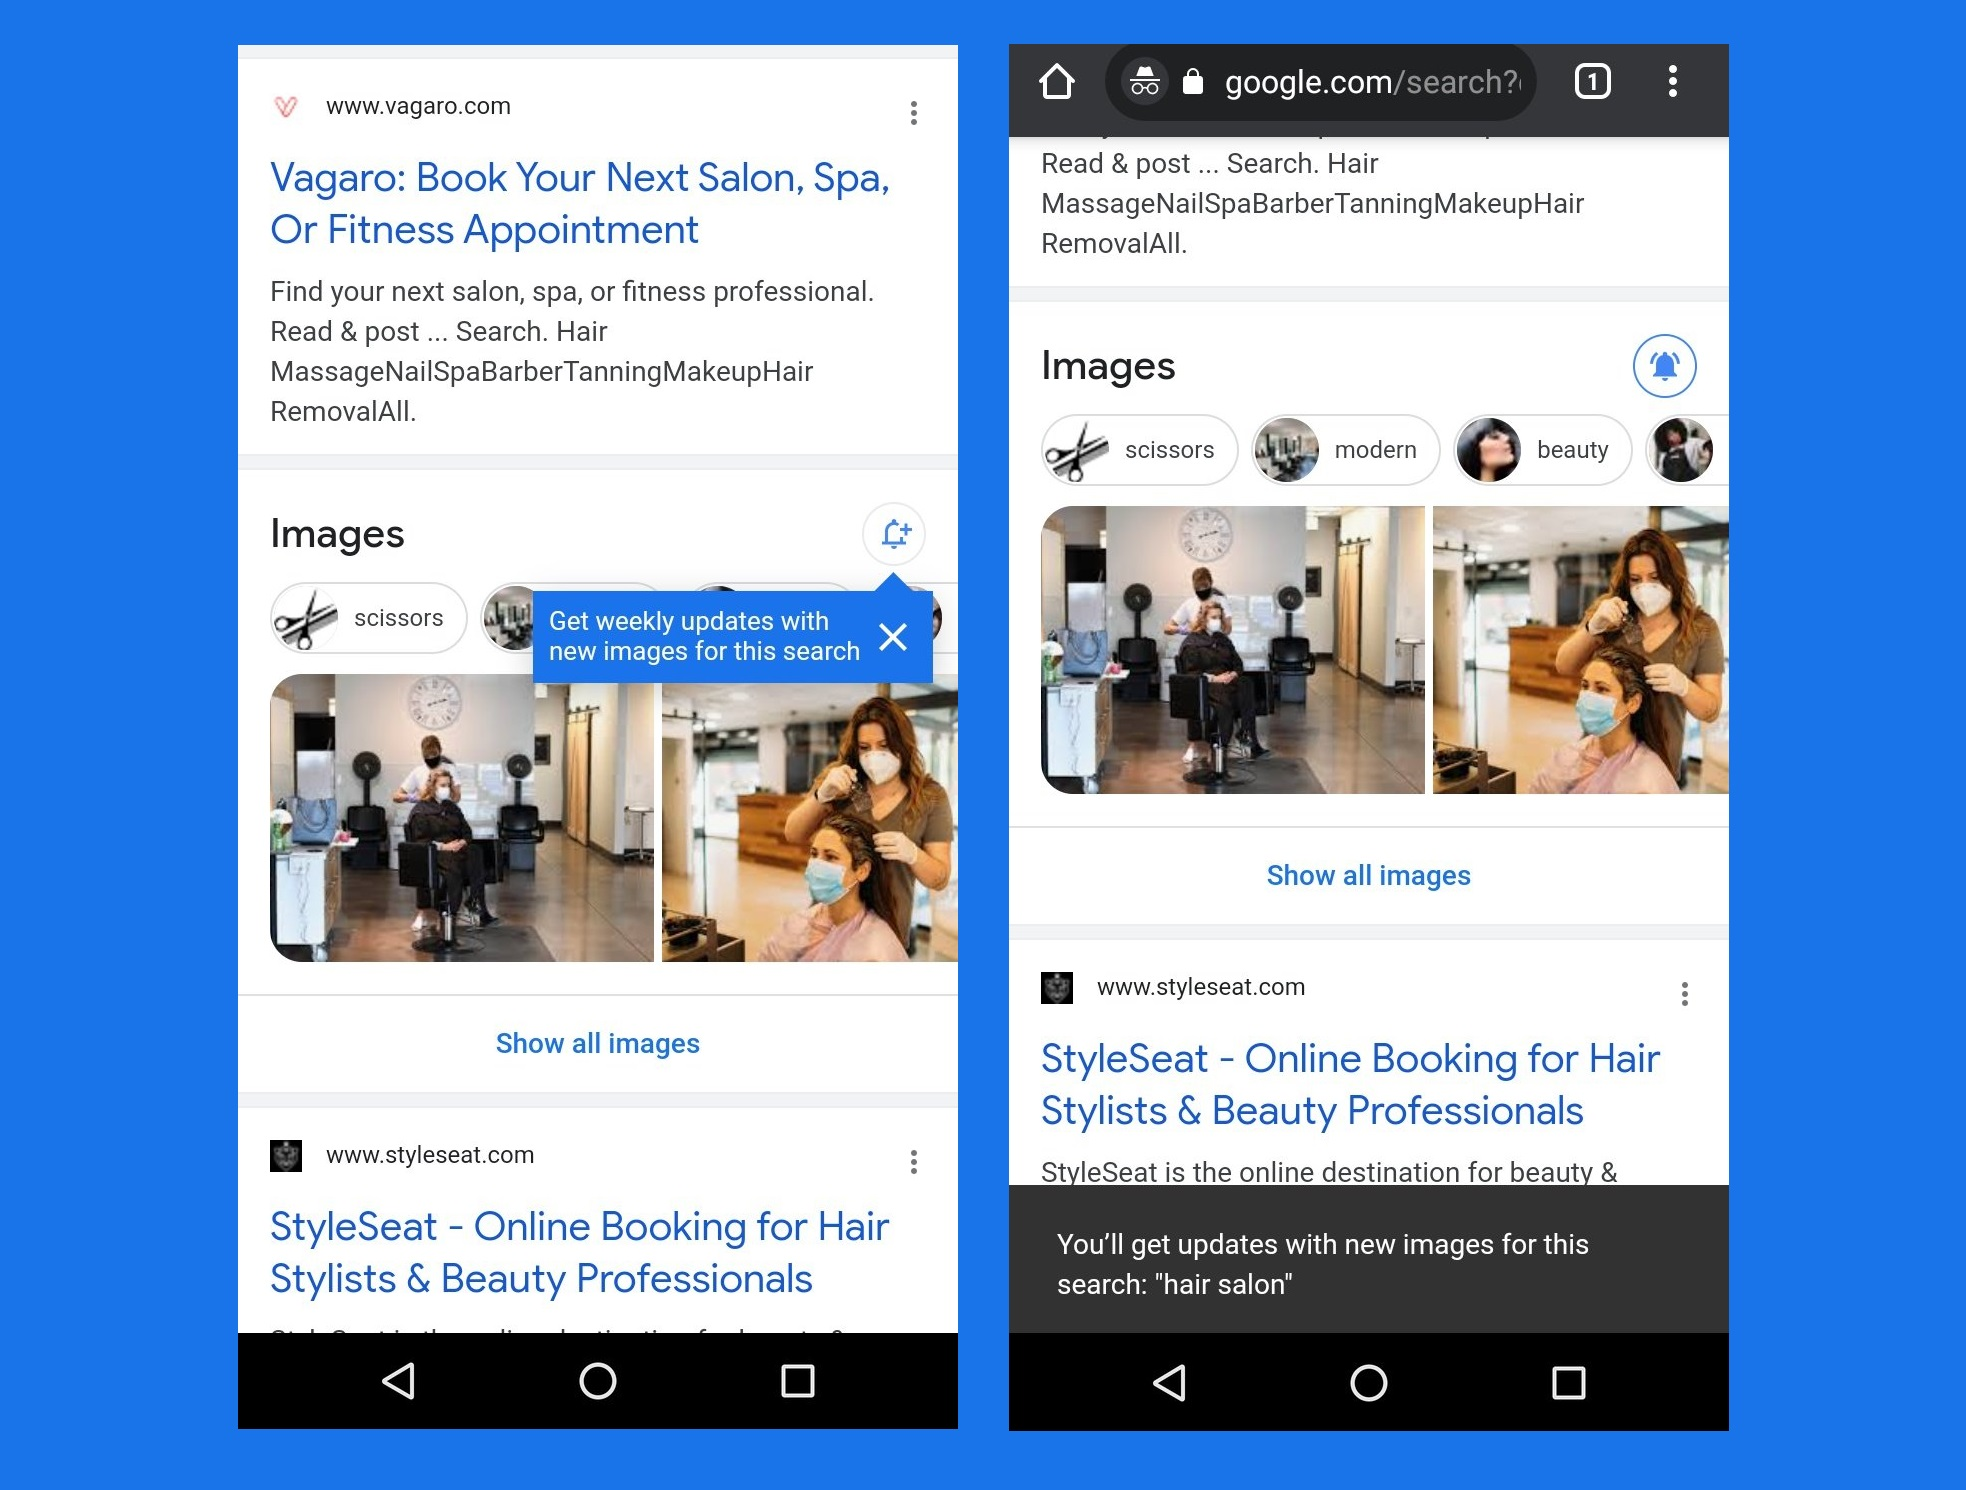 Google Enlarges Search Results for Product Reviews and Introduces a Bell Icon for Image Searches